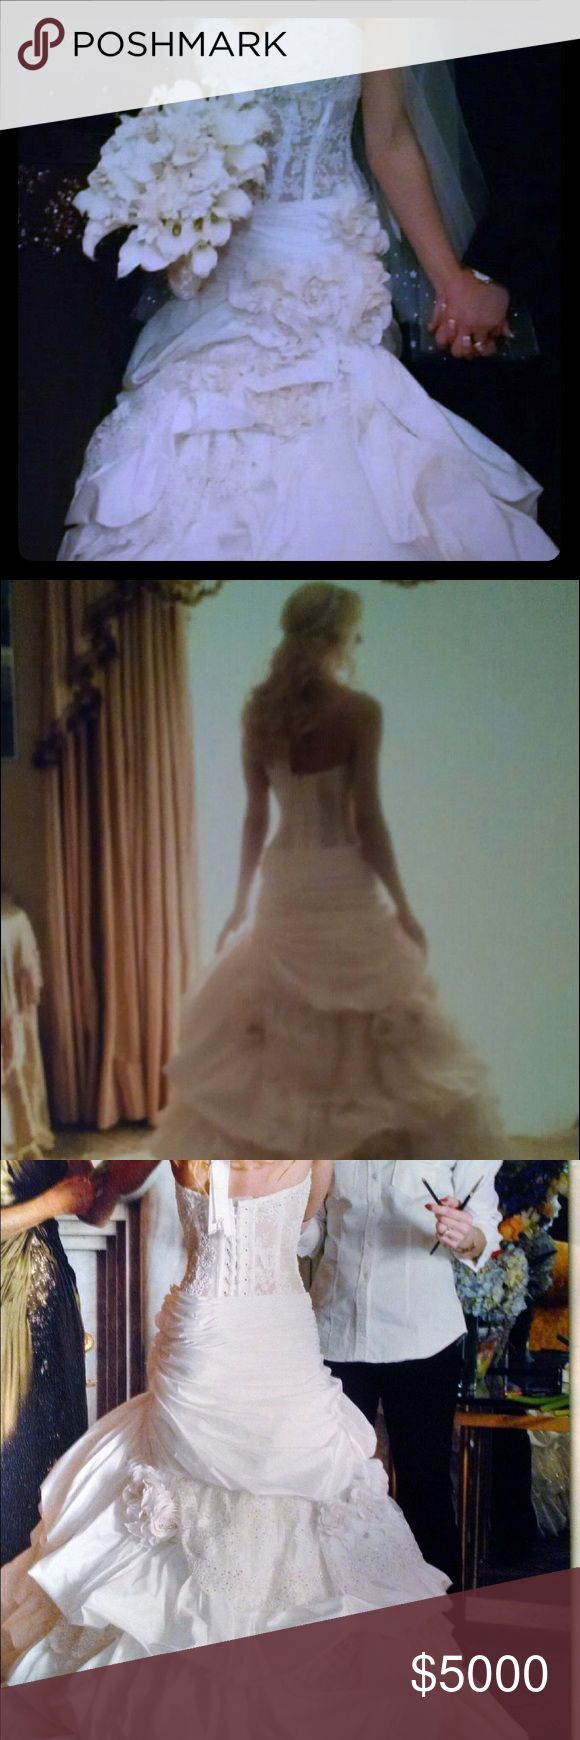 """Pnina Tornai, two-piece, custom wedding dress. This dress was designed, in person, with Pnina at Kleinfelds. The corset and bottom pieces can fit any size and can be adjusted. I am 5'1"""" but wore 4.5 inch heels on my wedding day. The dress can also be shortened, lengthened or bustled. It's Swarovski Crystal, Chantilly lace, silk and all the finest fabrics. It's one of a kind and 100% Original! I have the receipt for proof of Authenticity and original price. Pnina Tornai Dresses Wedding"""